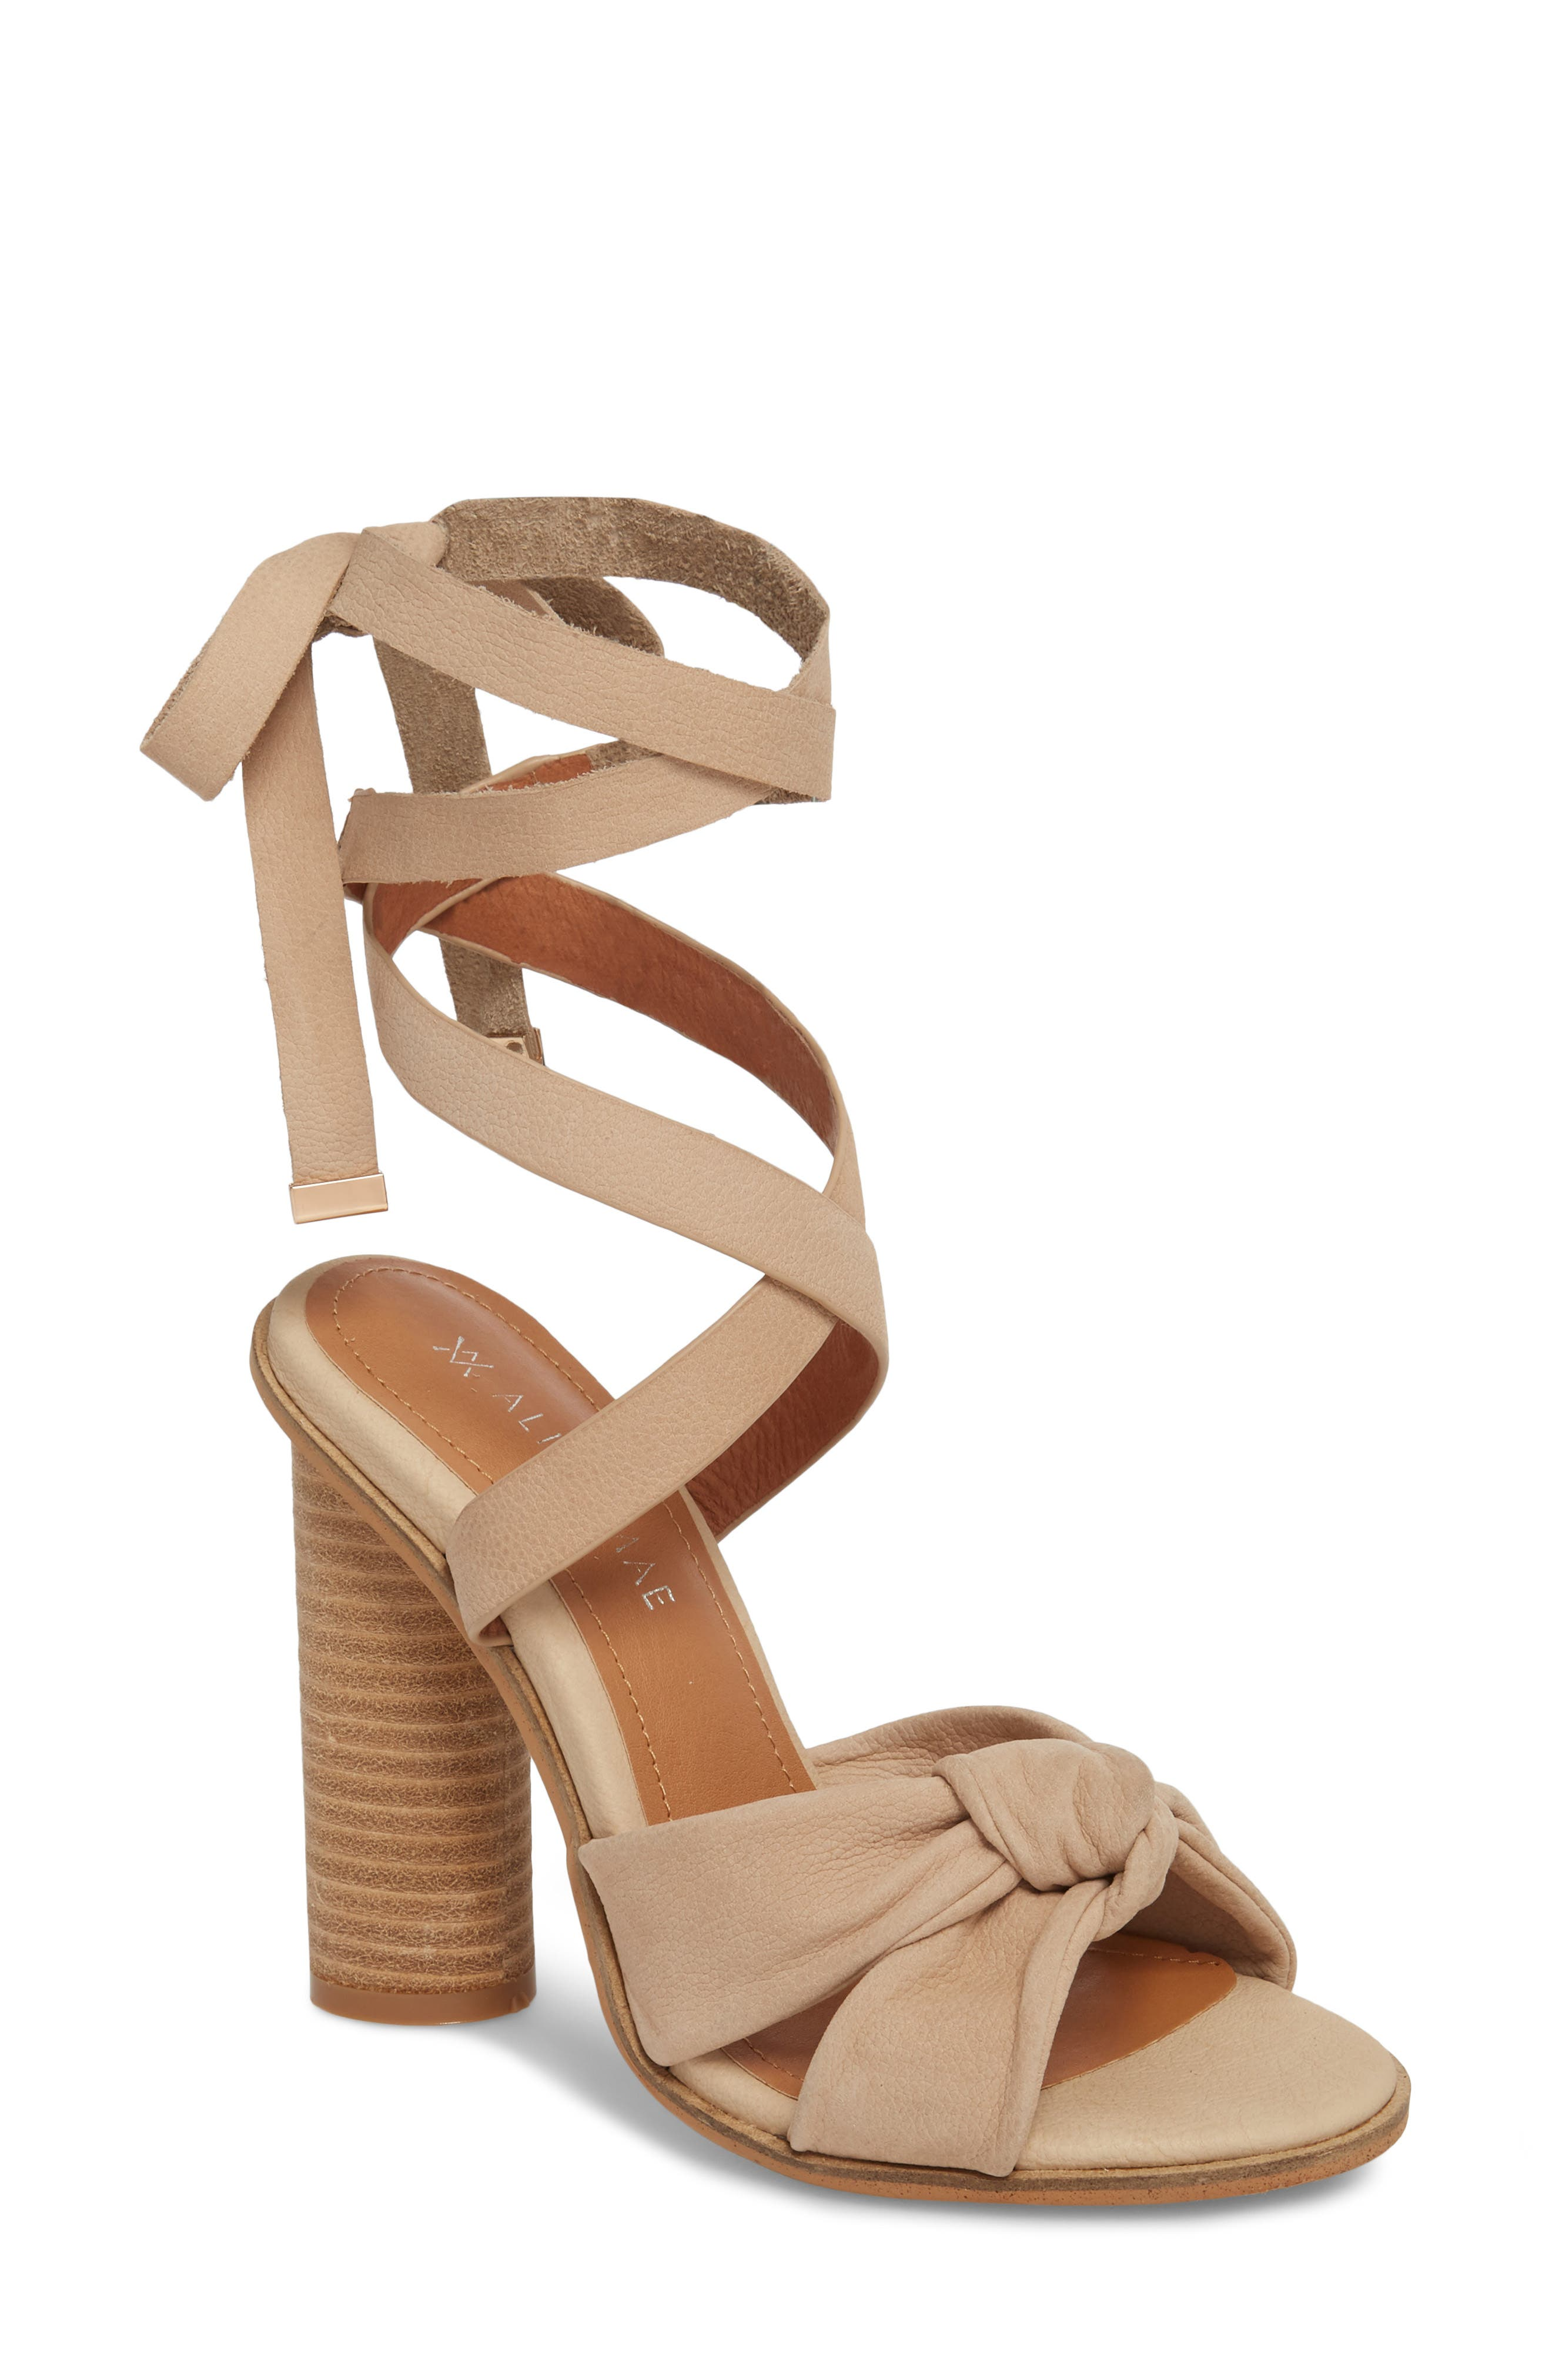 Africa Ankle Wrap Sandal,                             Main thumbnail 1, color,                             Natural Leather